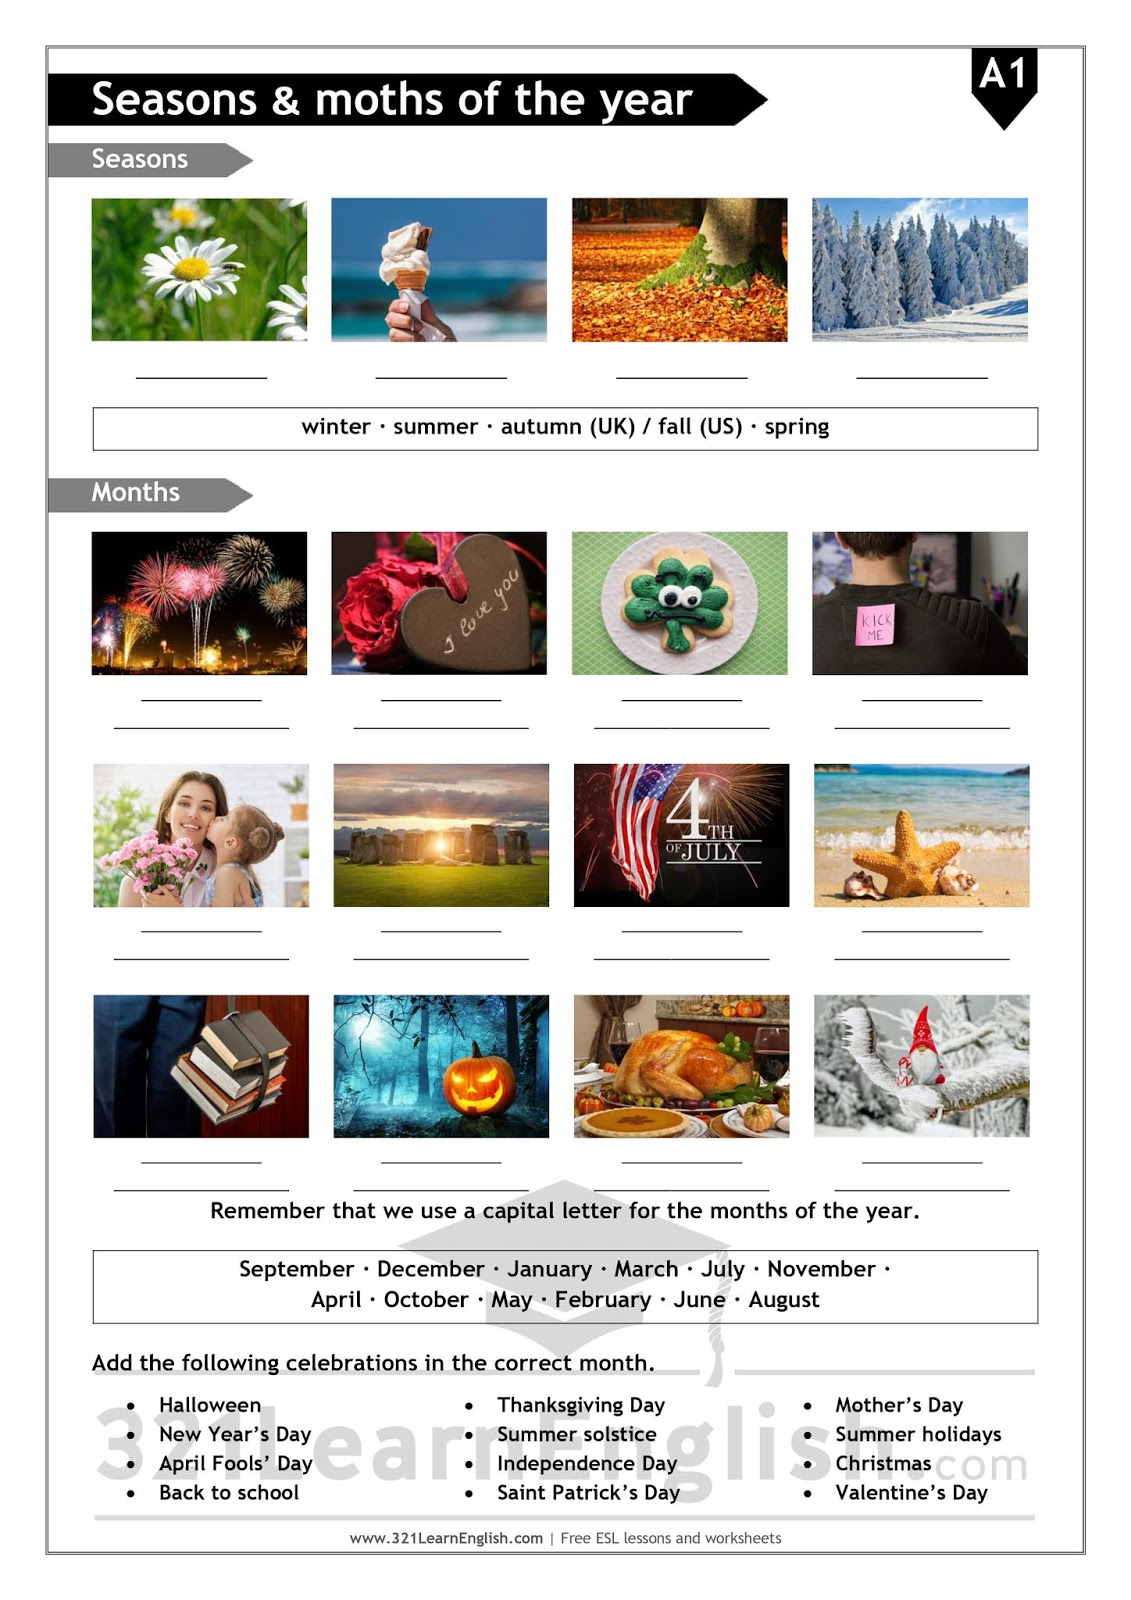 321 Learn English Esl Vocabulary Seasons And Months